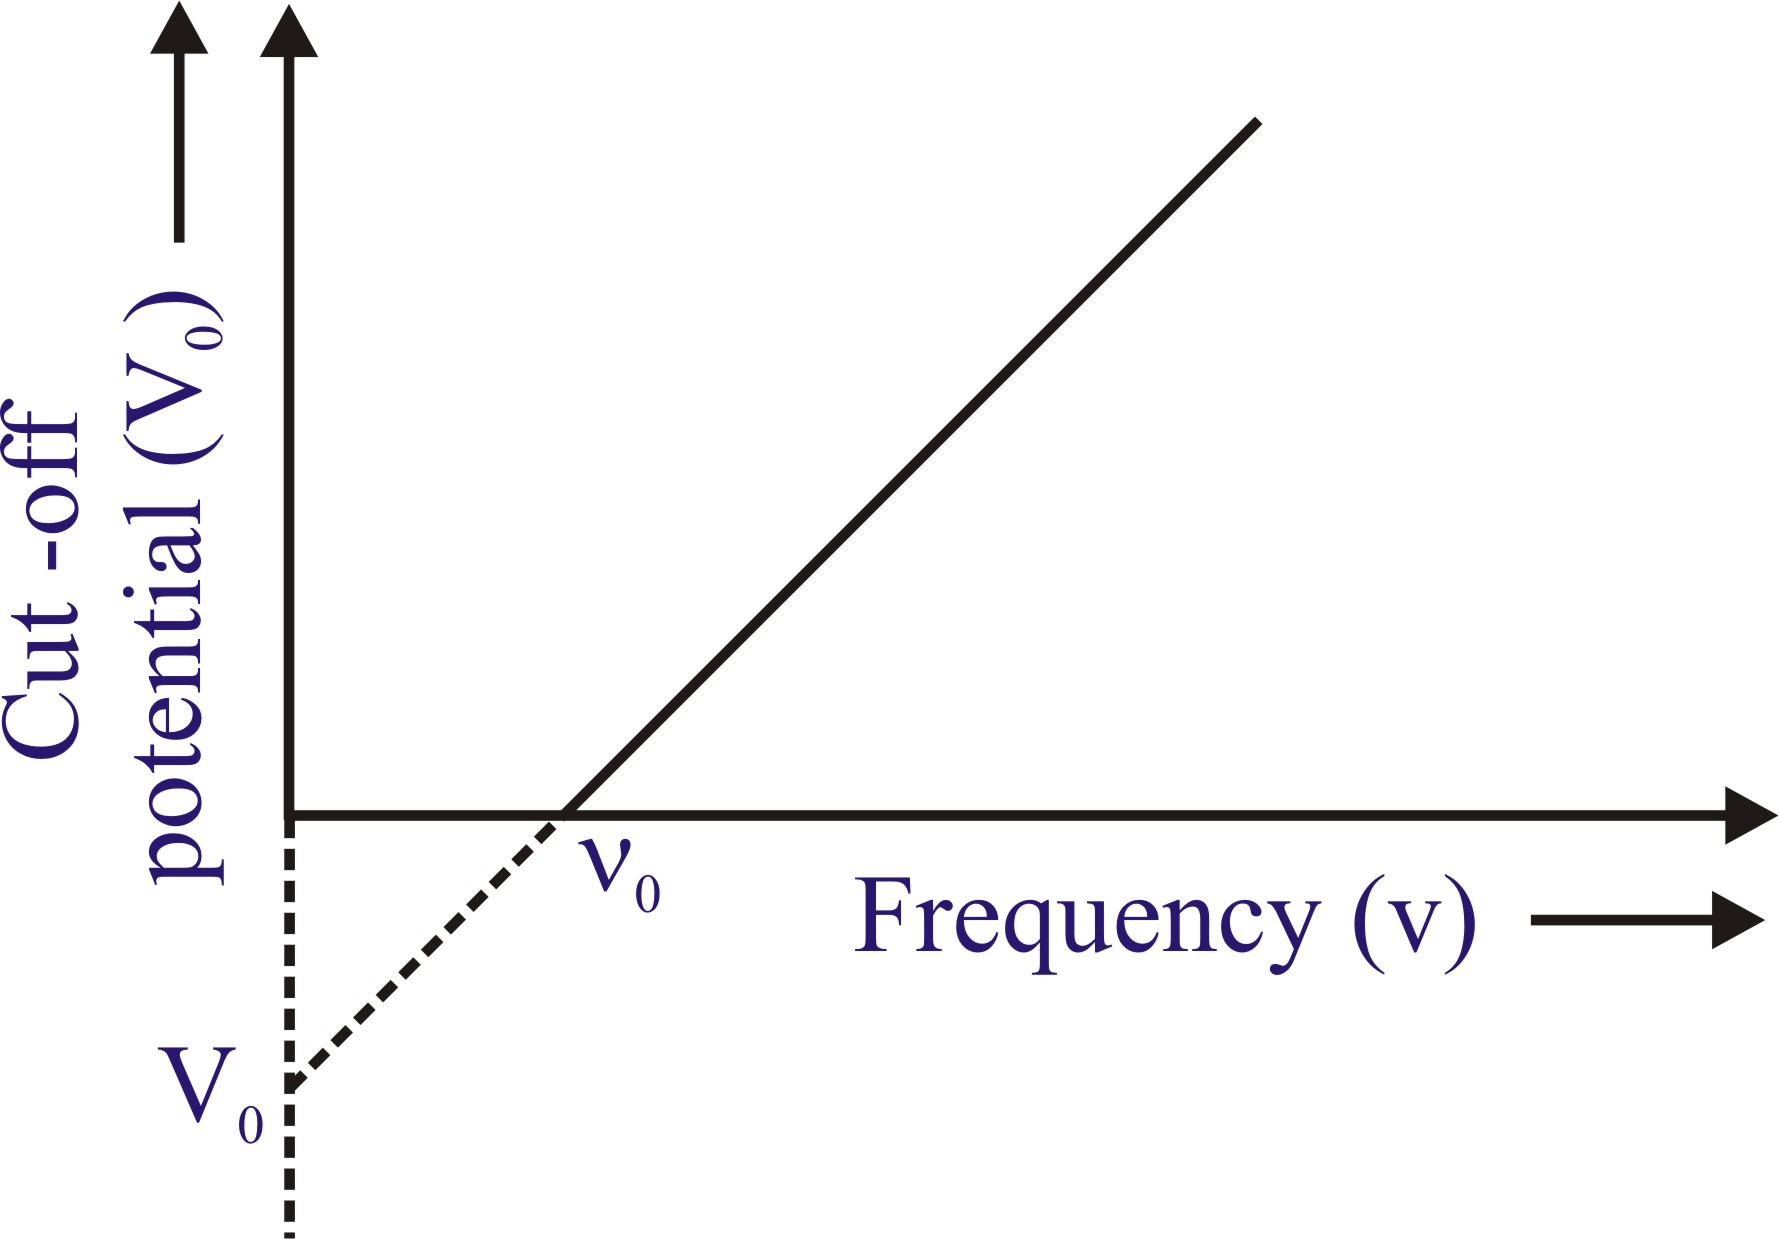 Effect of Change in Frequency on Voltage